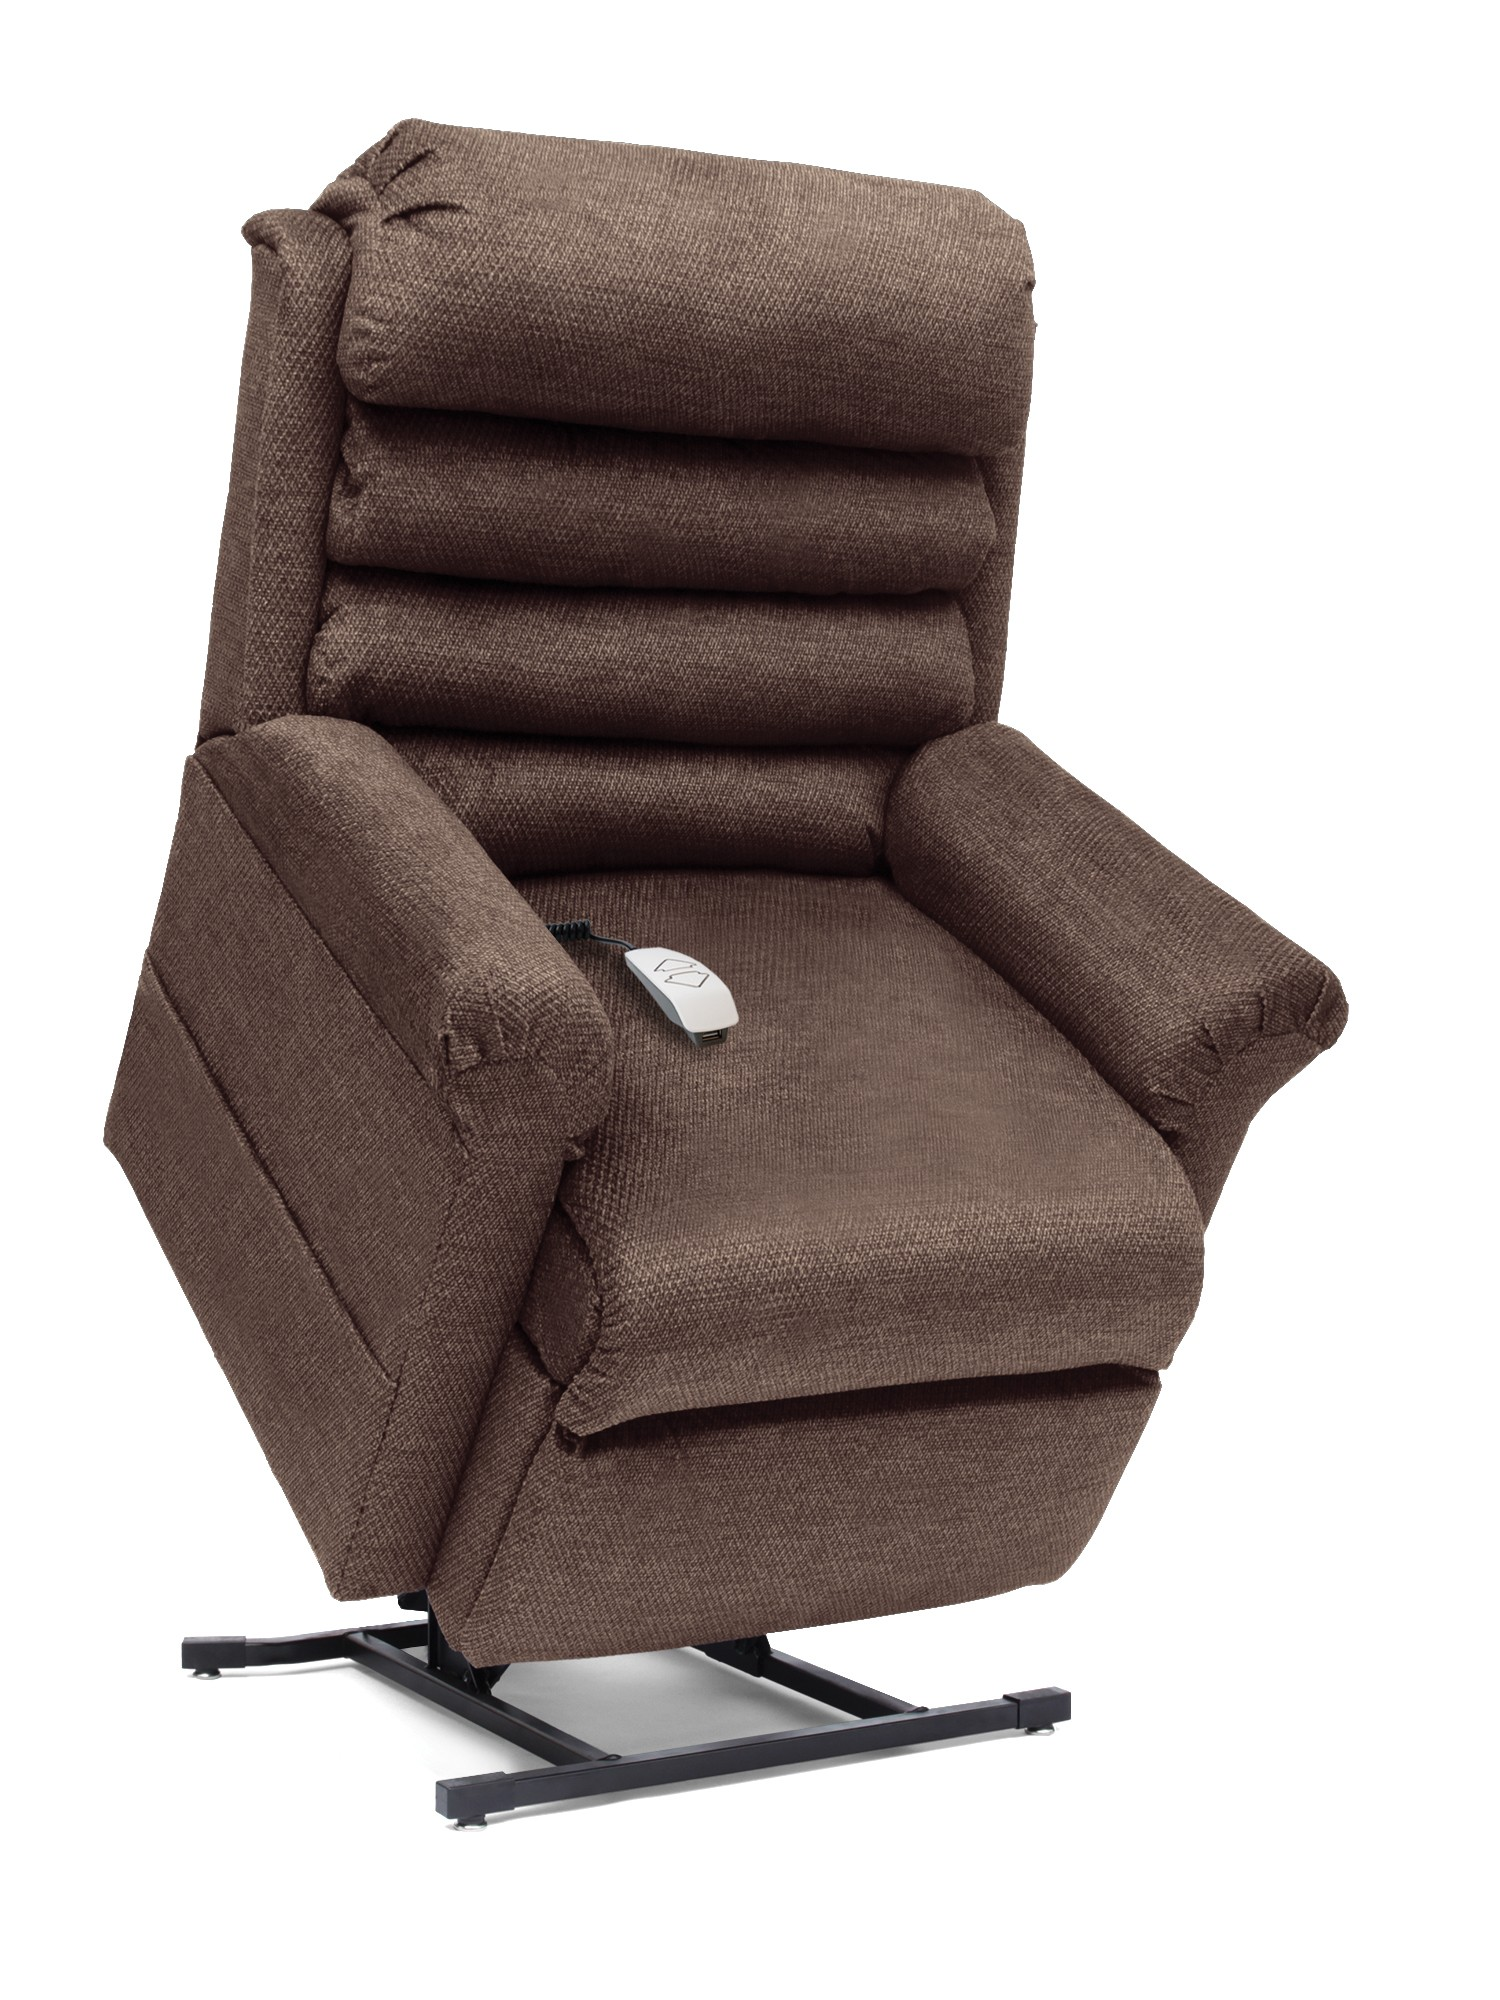 Terrific Pride Elegance Collection Lift Chair Waterfall Back Lc 470M Uwap Interior Chair Design Uwaporg